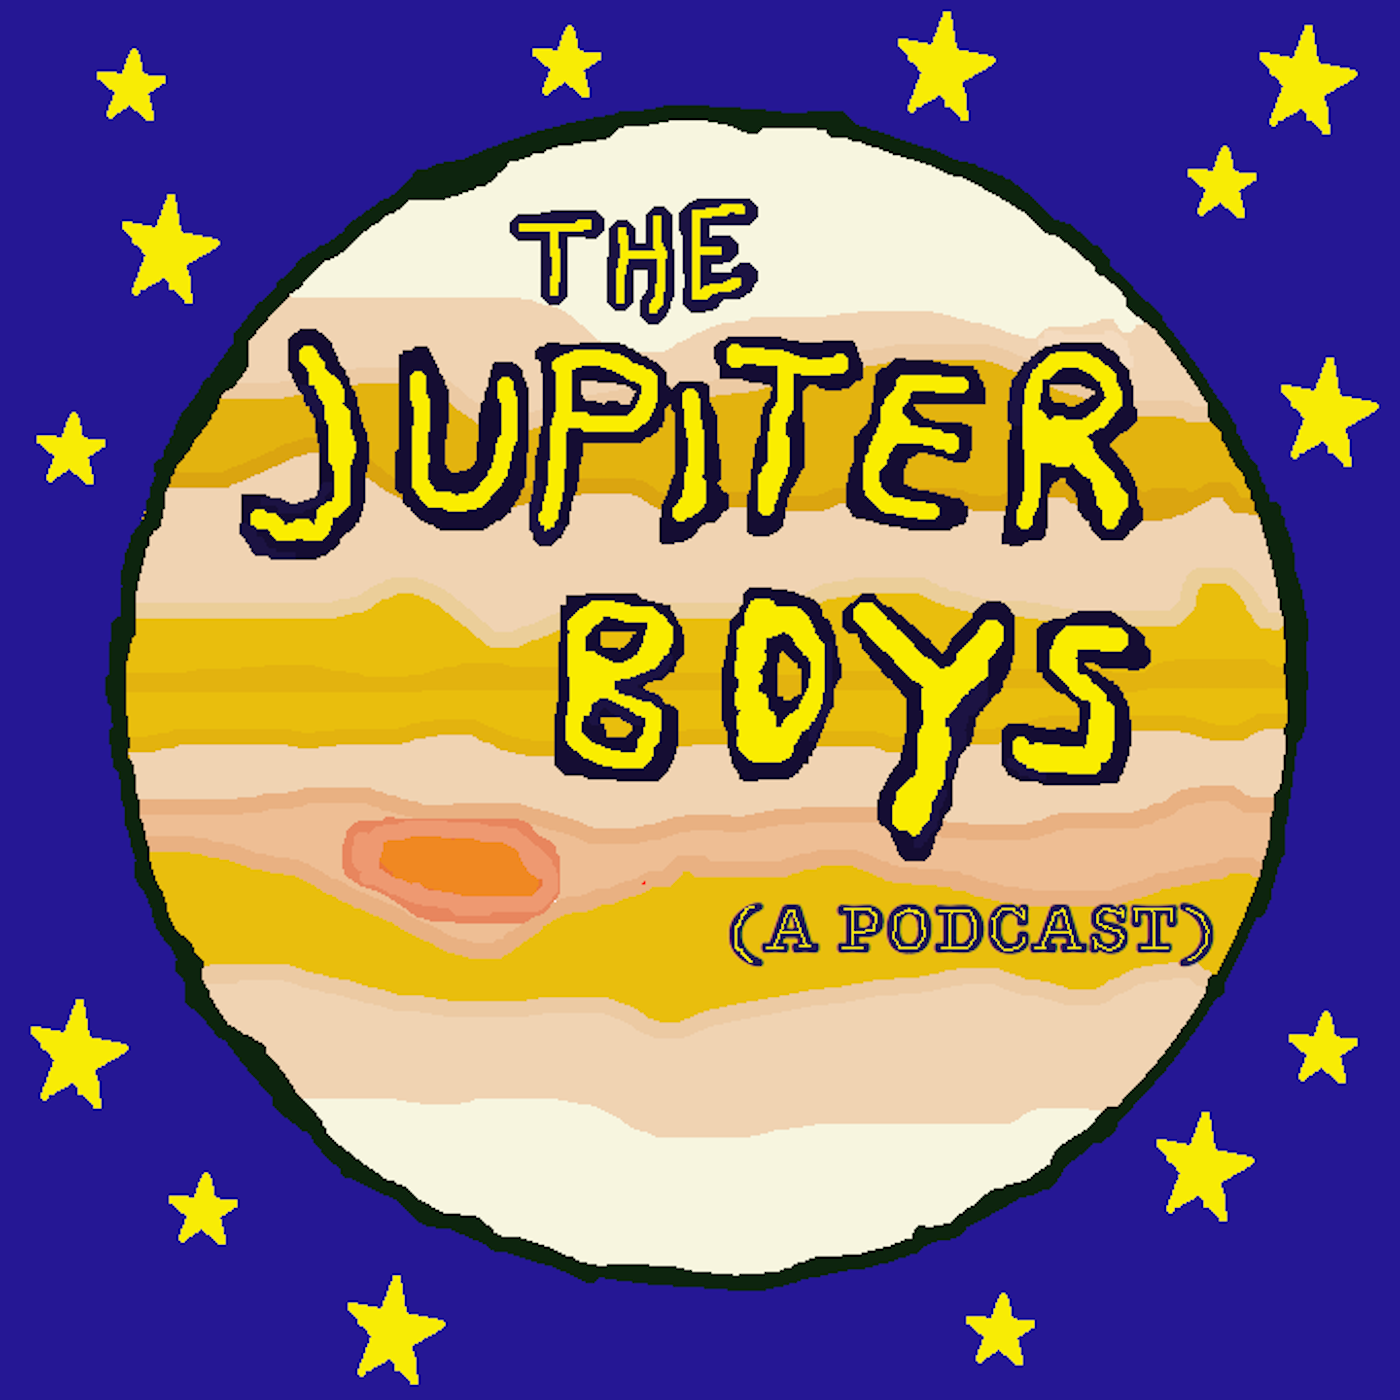 The Jupiter Boys